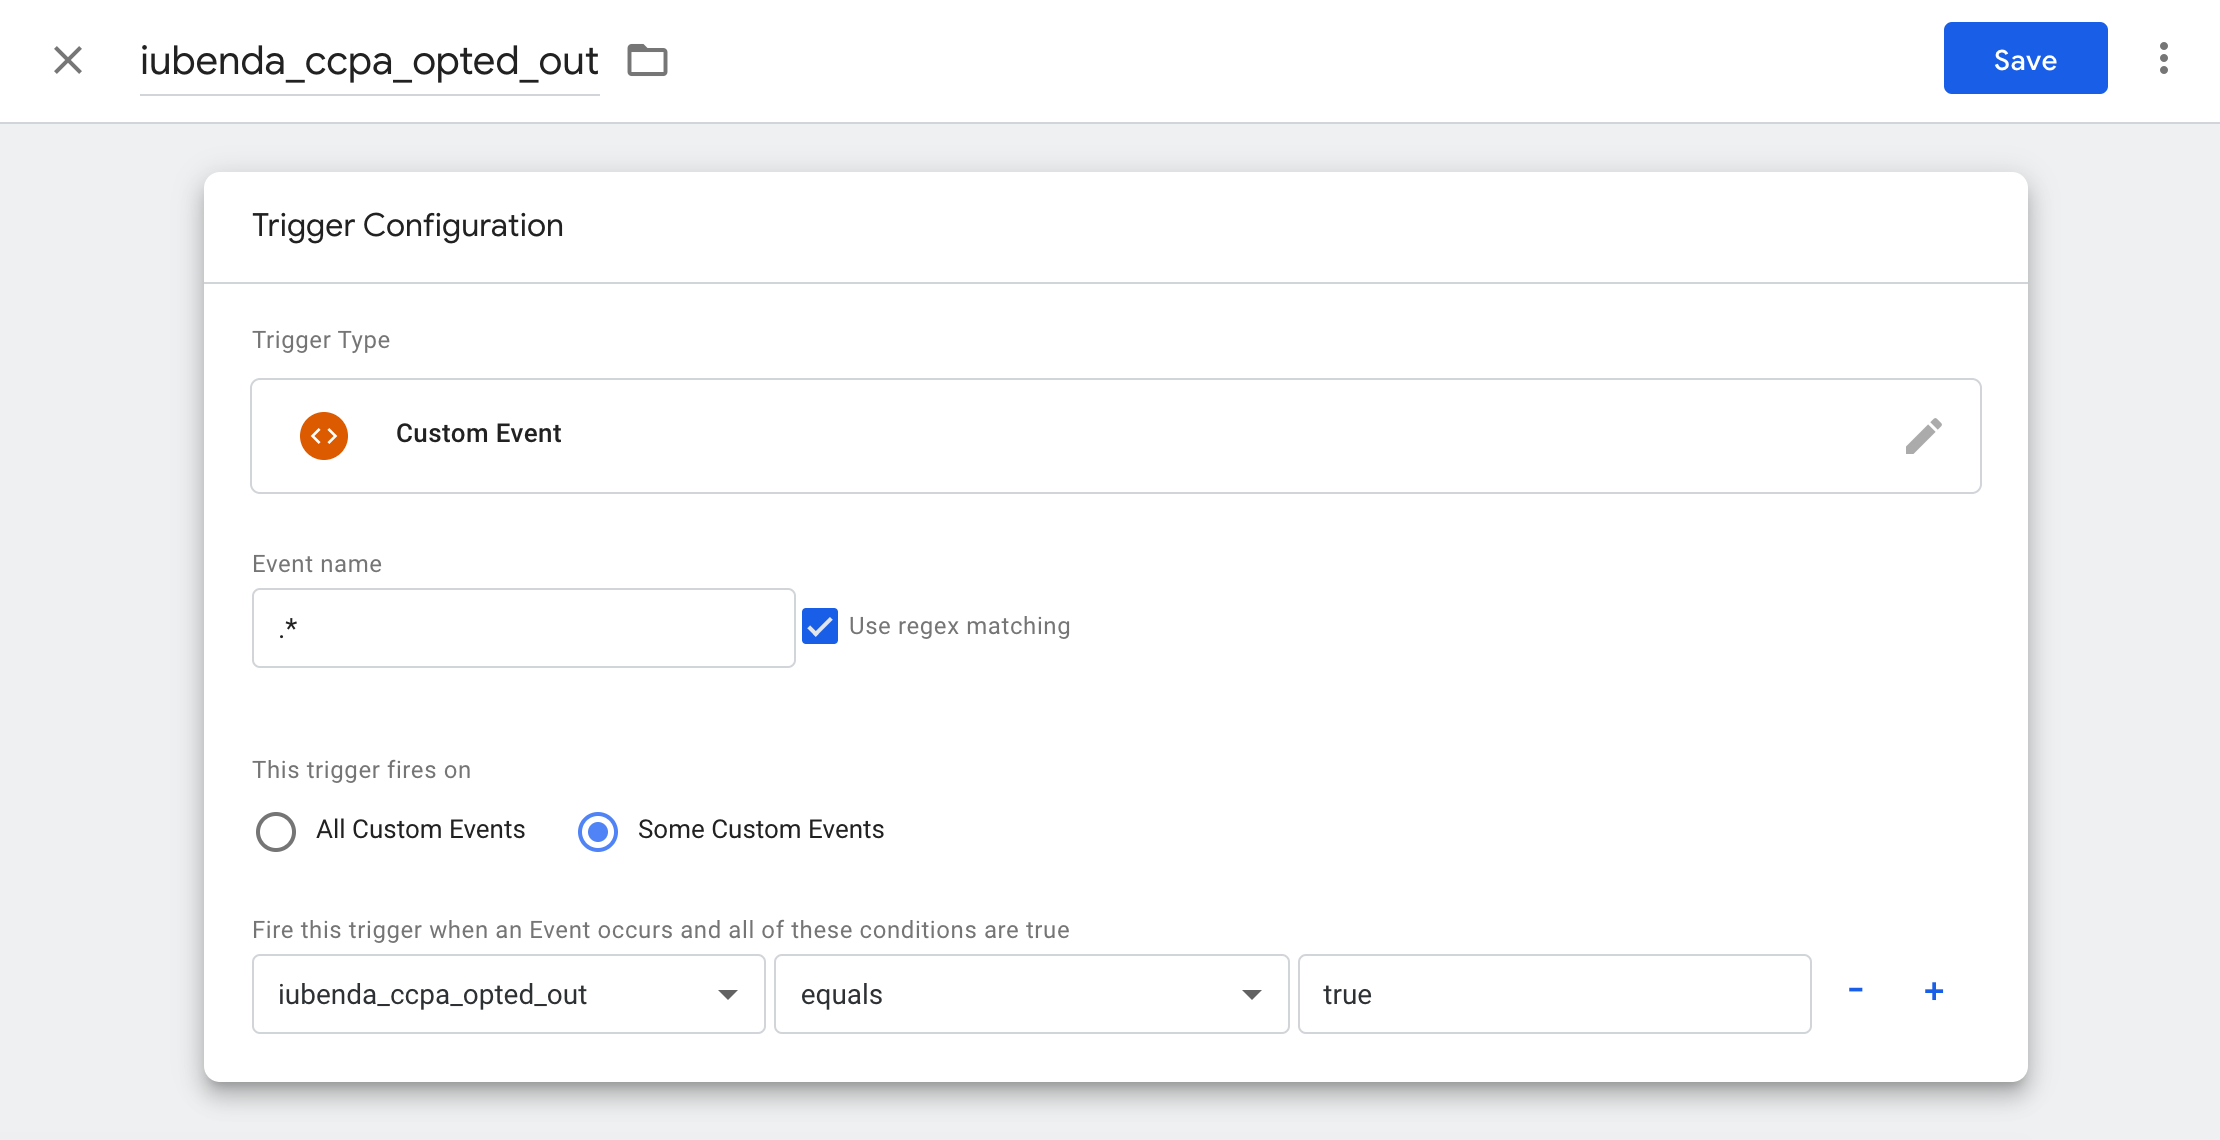 Google Tag Manager - iubenda_ccpa_opted_out trigger configuration